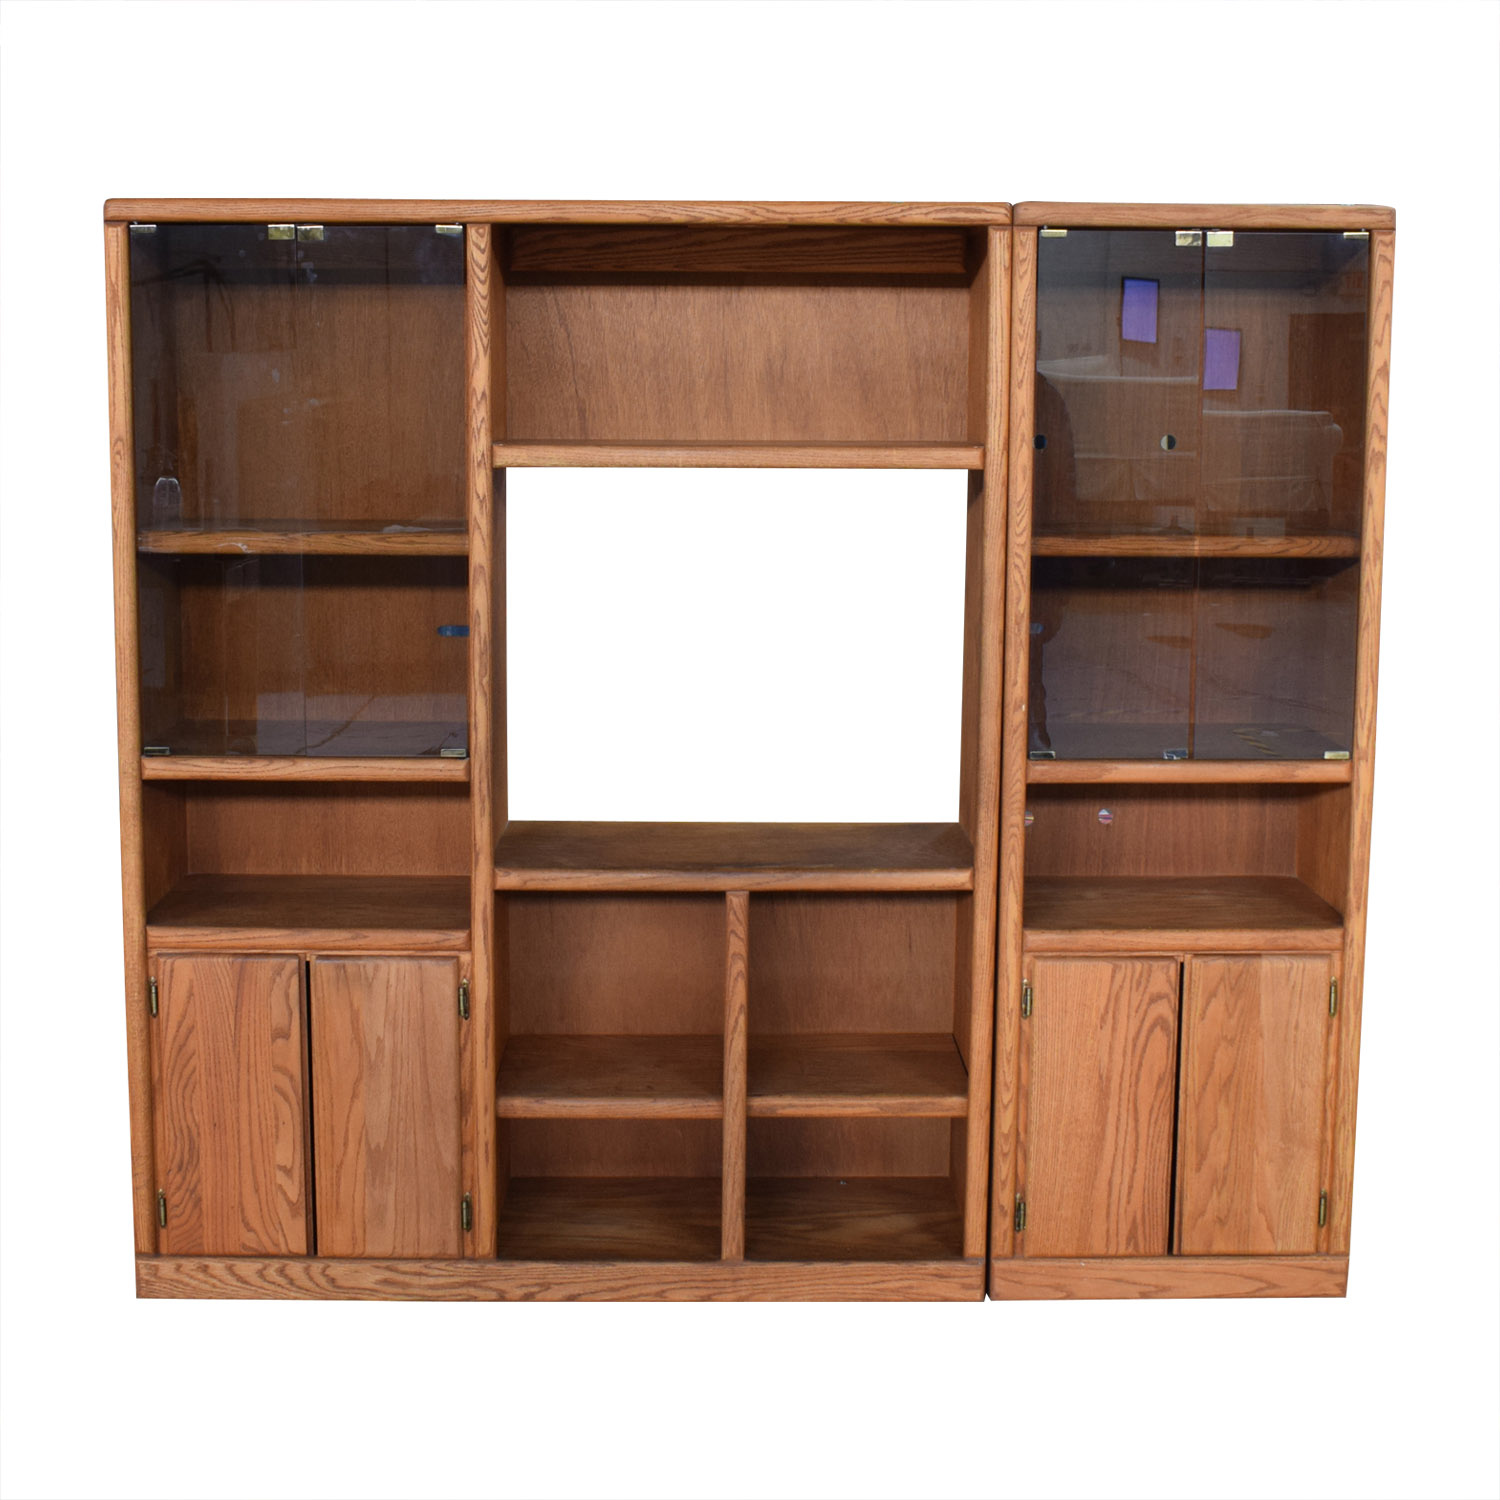 Thornwood Cherry Entertainment Center coupon